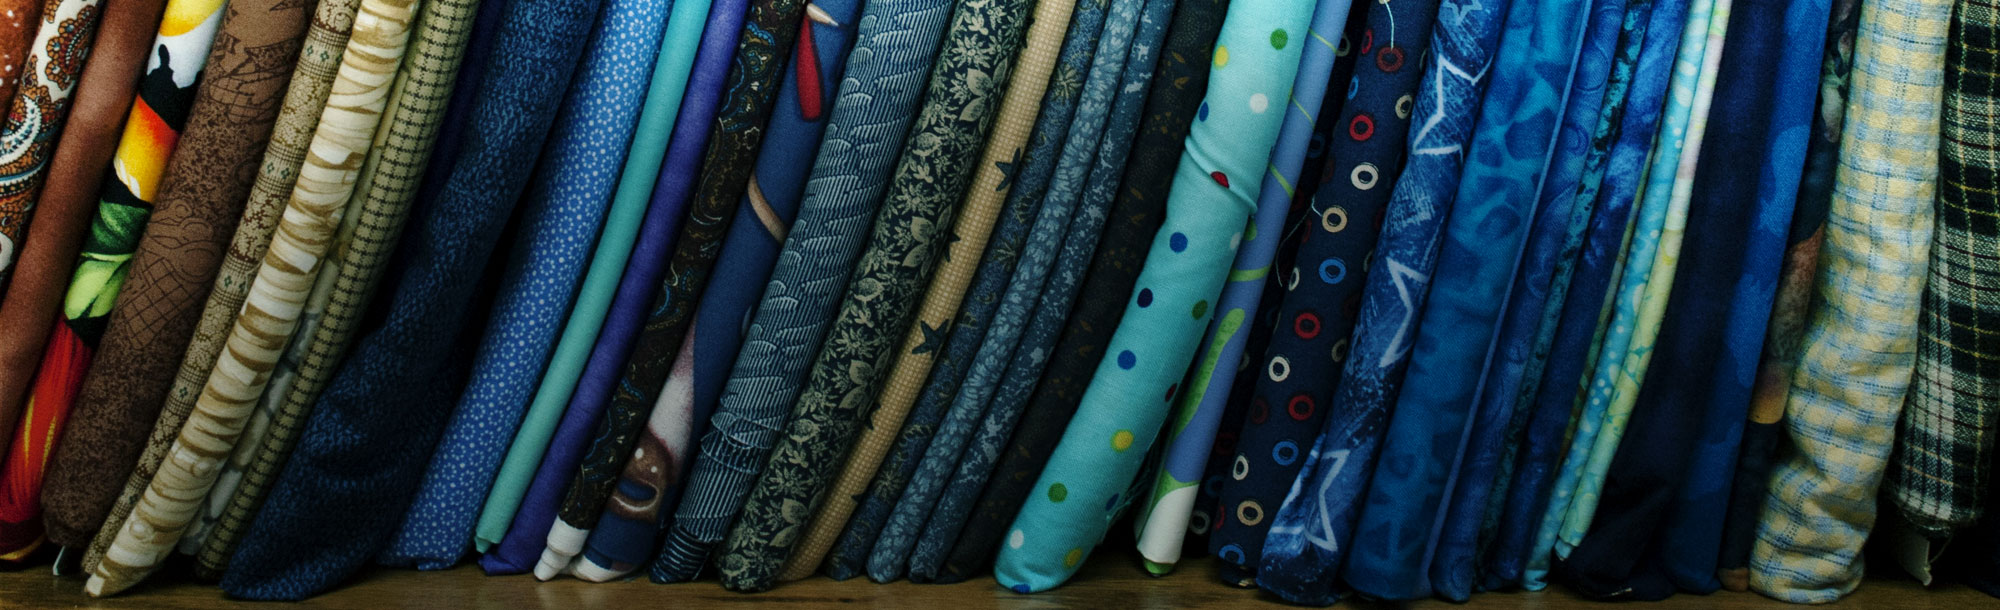 Discount Upholstery Fabric | Wholesale Fabric Suppliers | Curtain ...